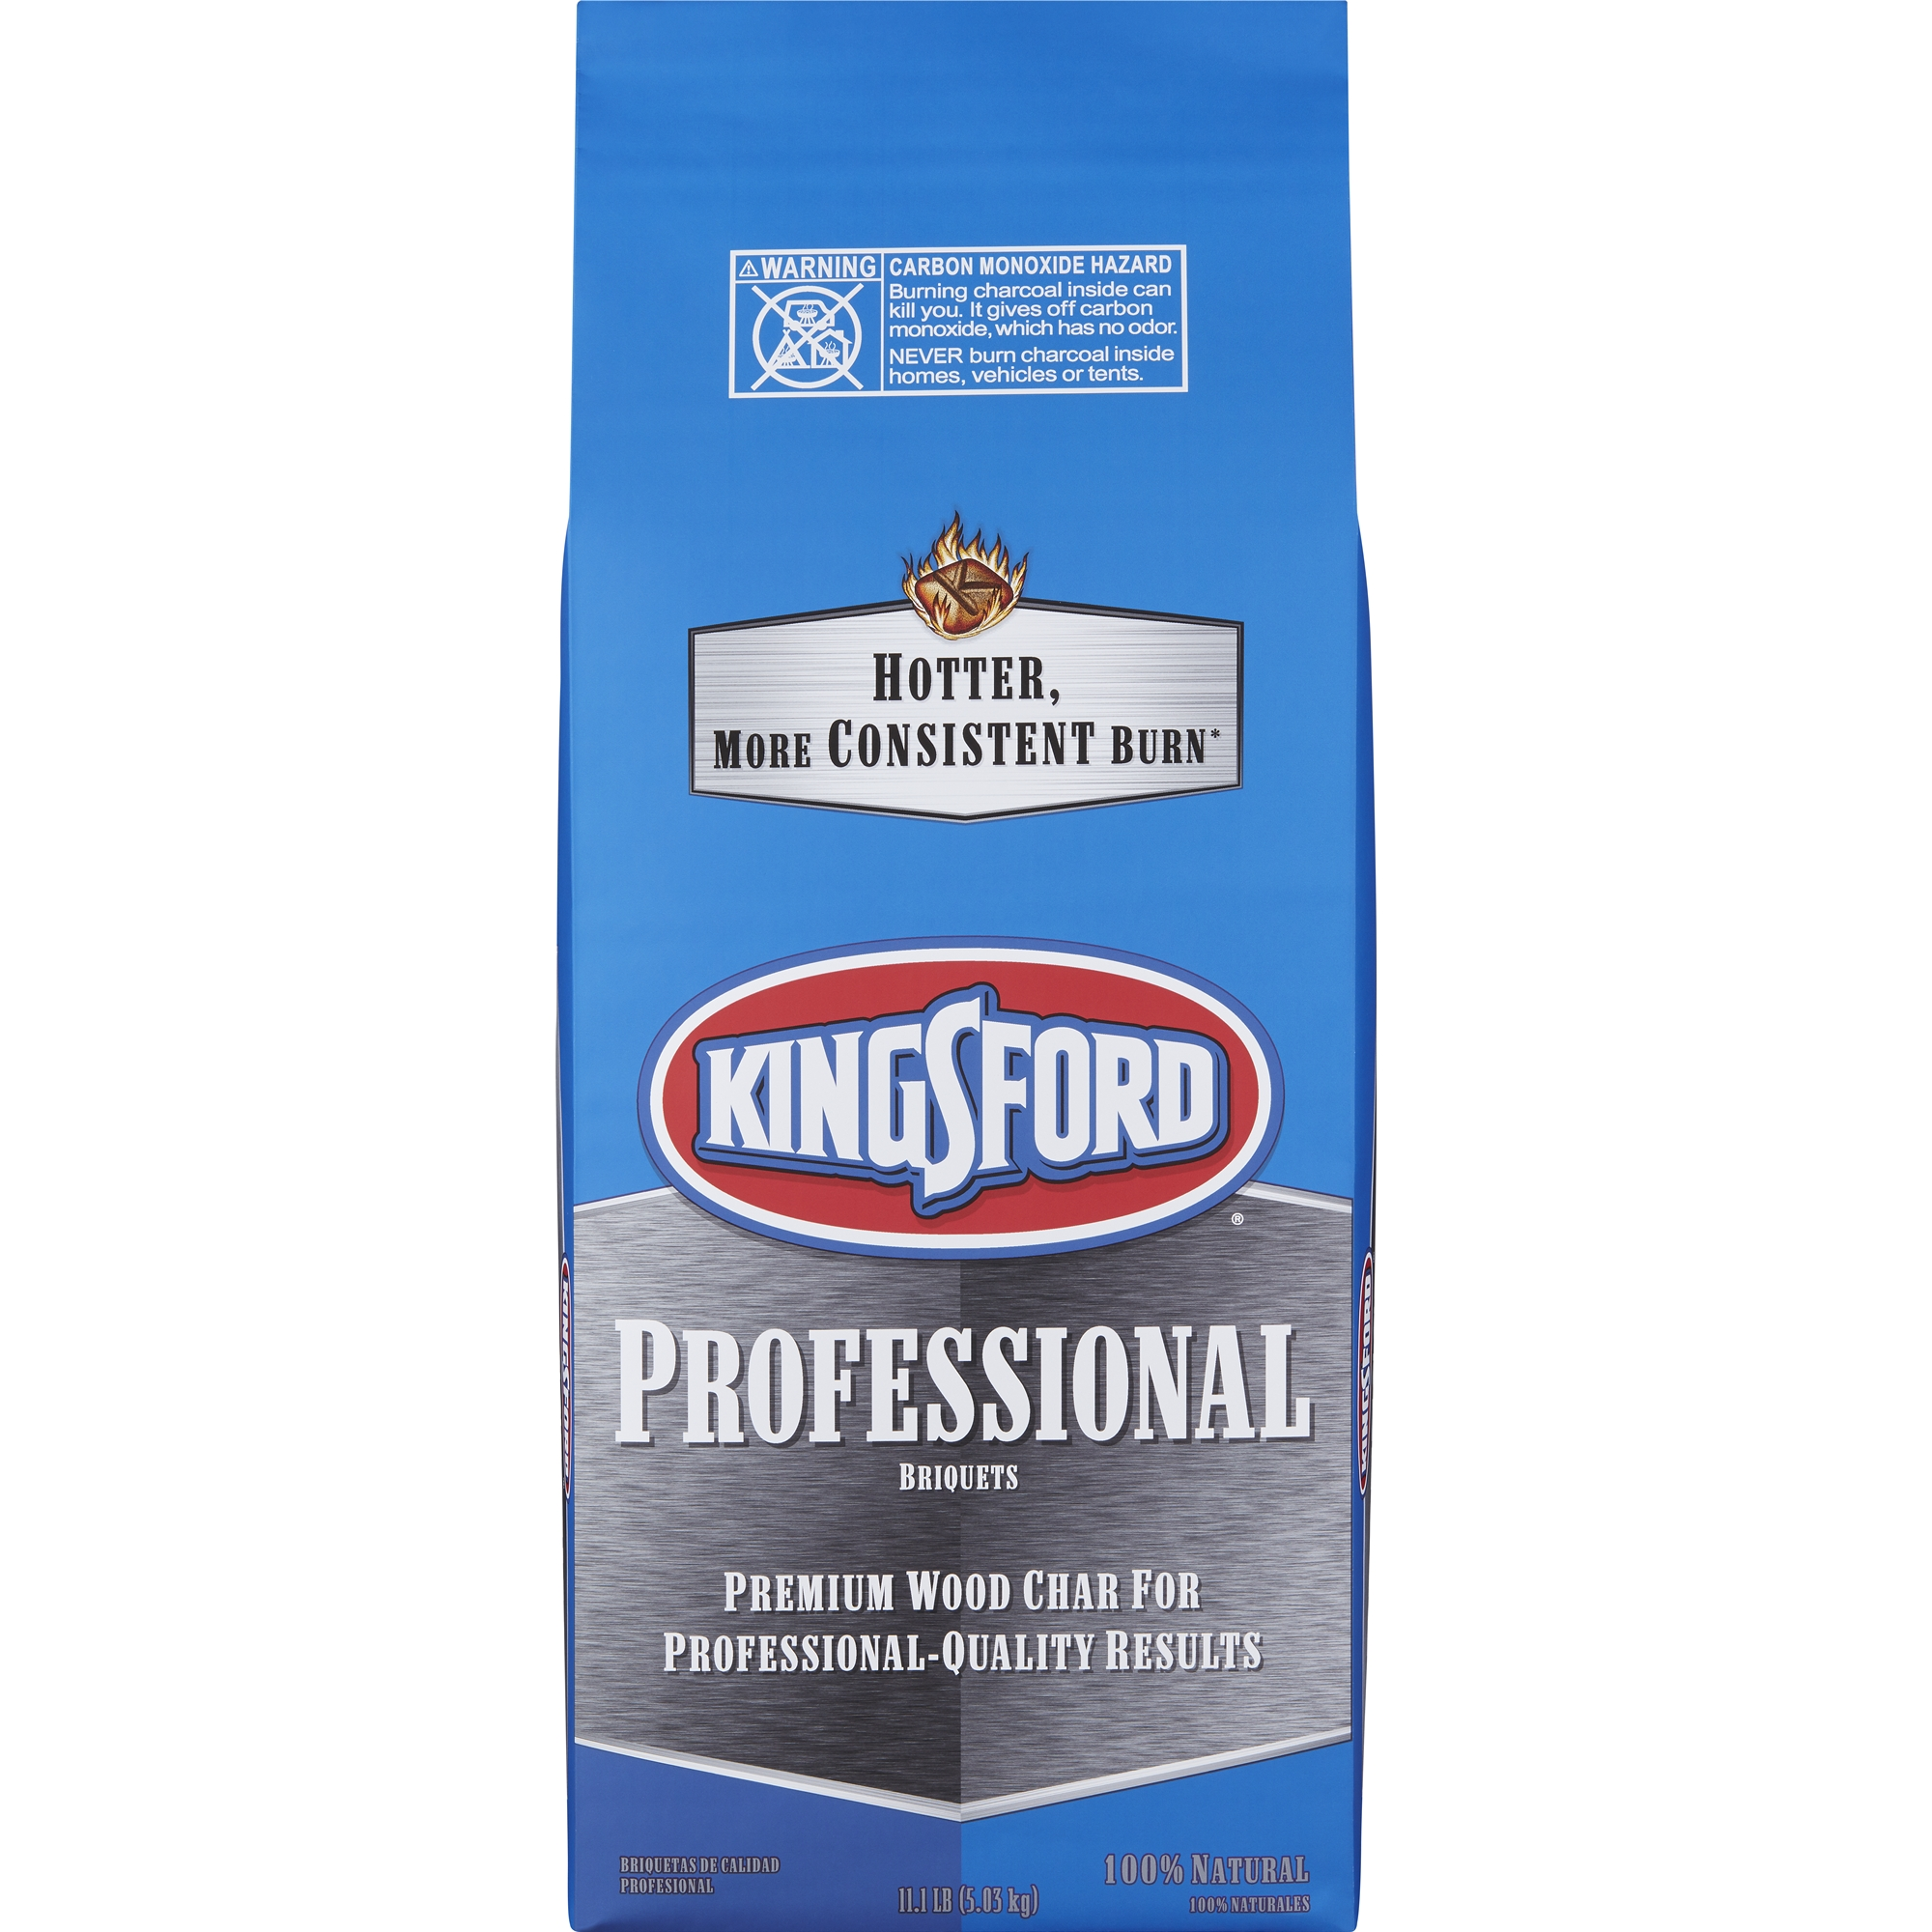 study guide for kingsford charcoal Smouldering charcoal study guide pdftable of contents - fireplace stove worldpublications library | northwest fire science consortiumthe tempest - wikipediamunicipal waste management systems for domestic use.